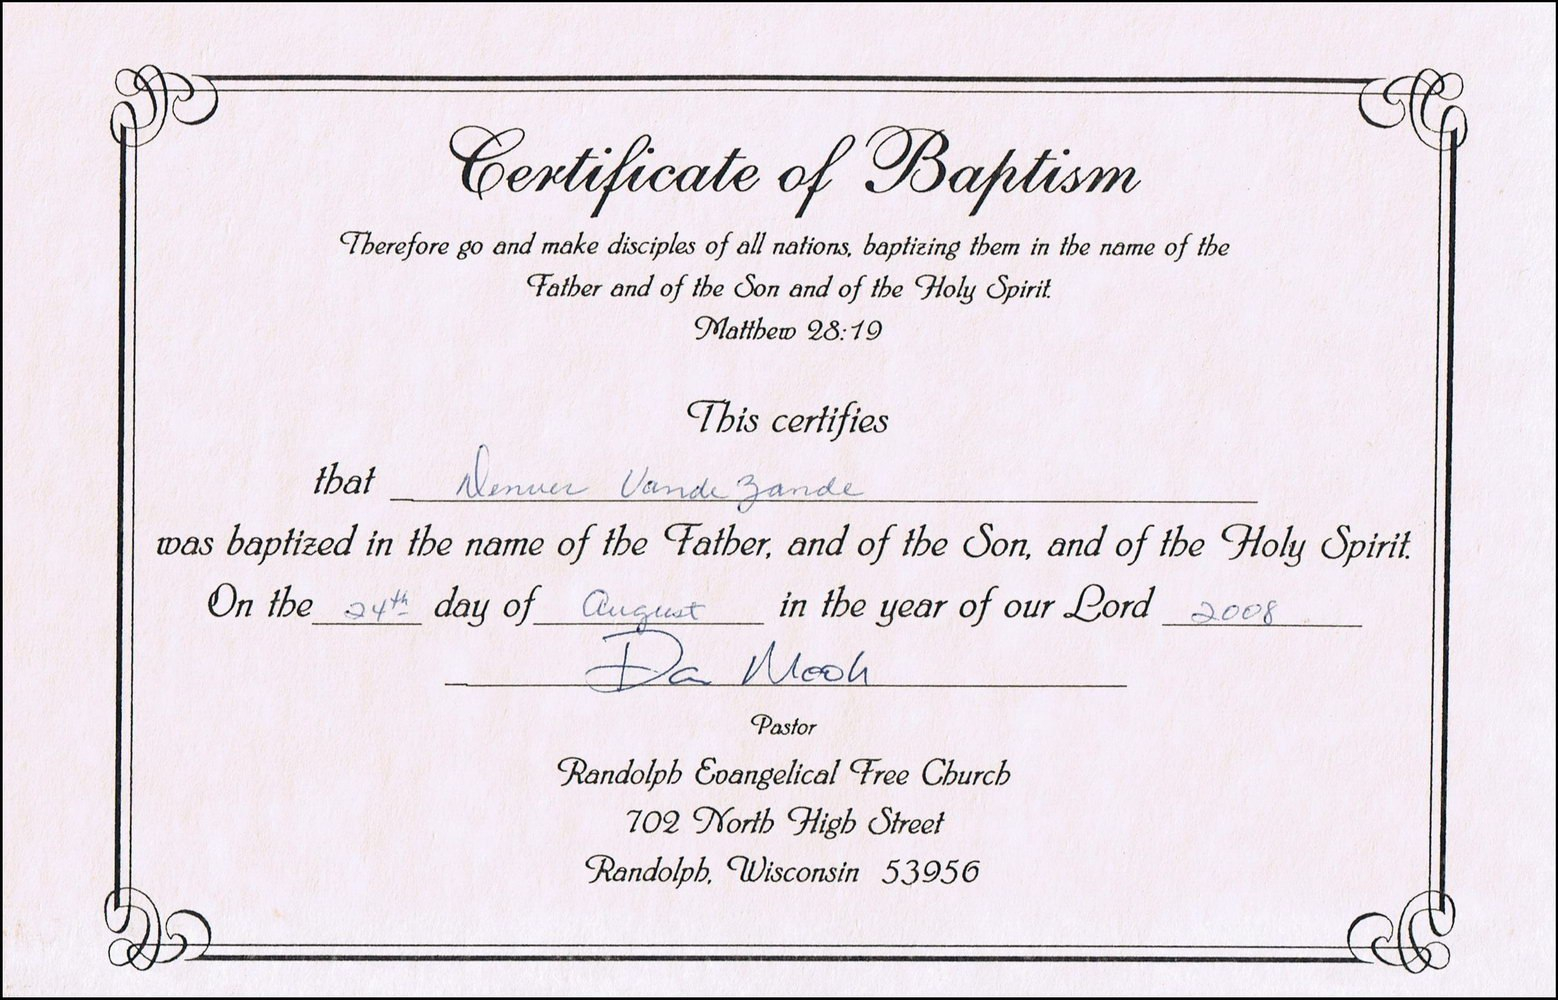 Certificate Of Baptism Template Free Awesome Ideas Broadman Word With Baptism Certificate Template Word